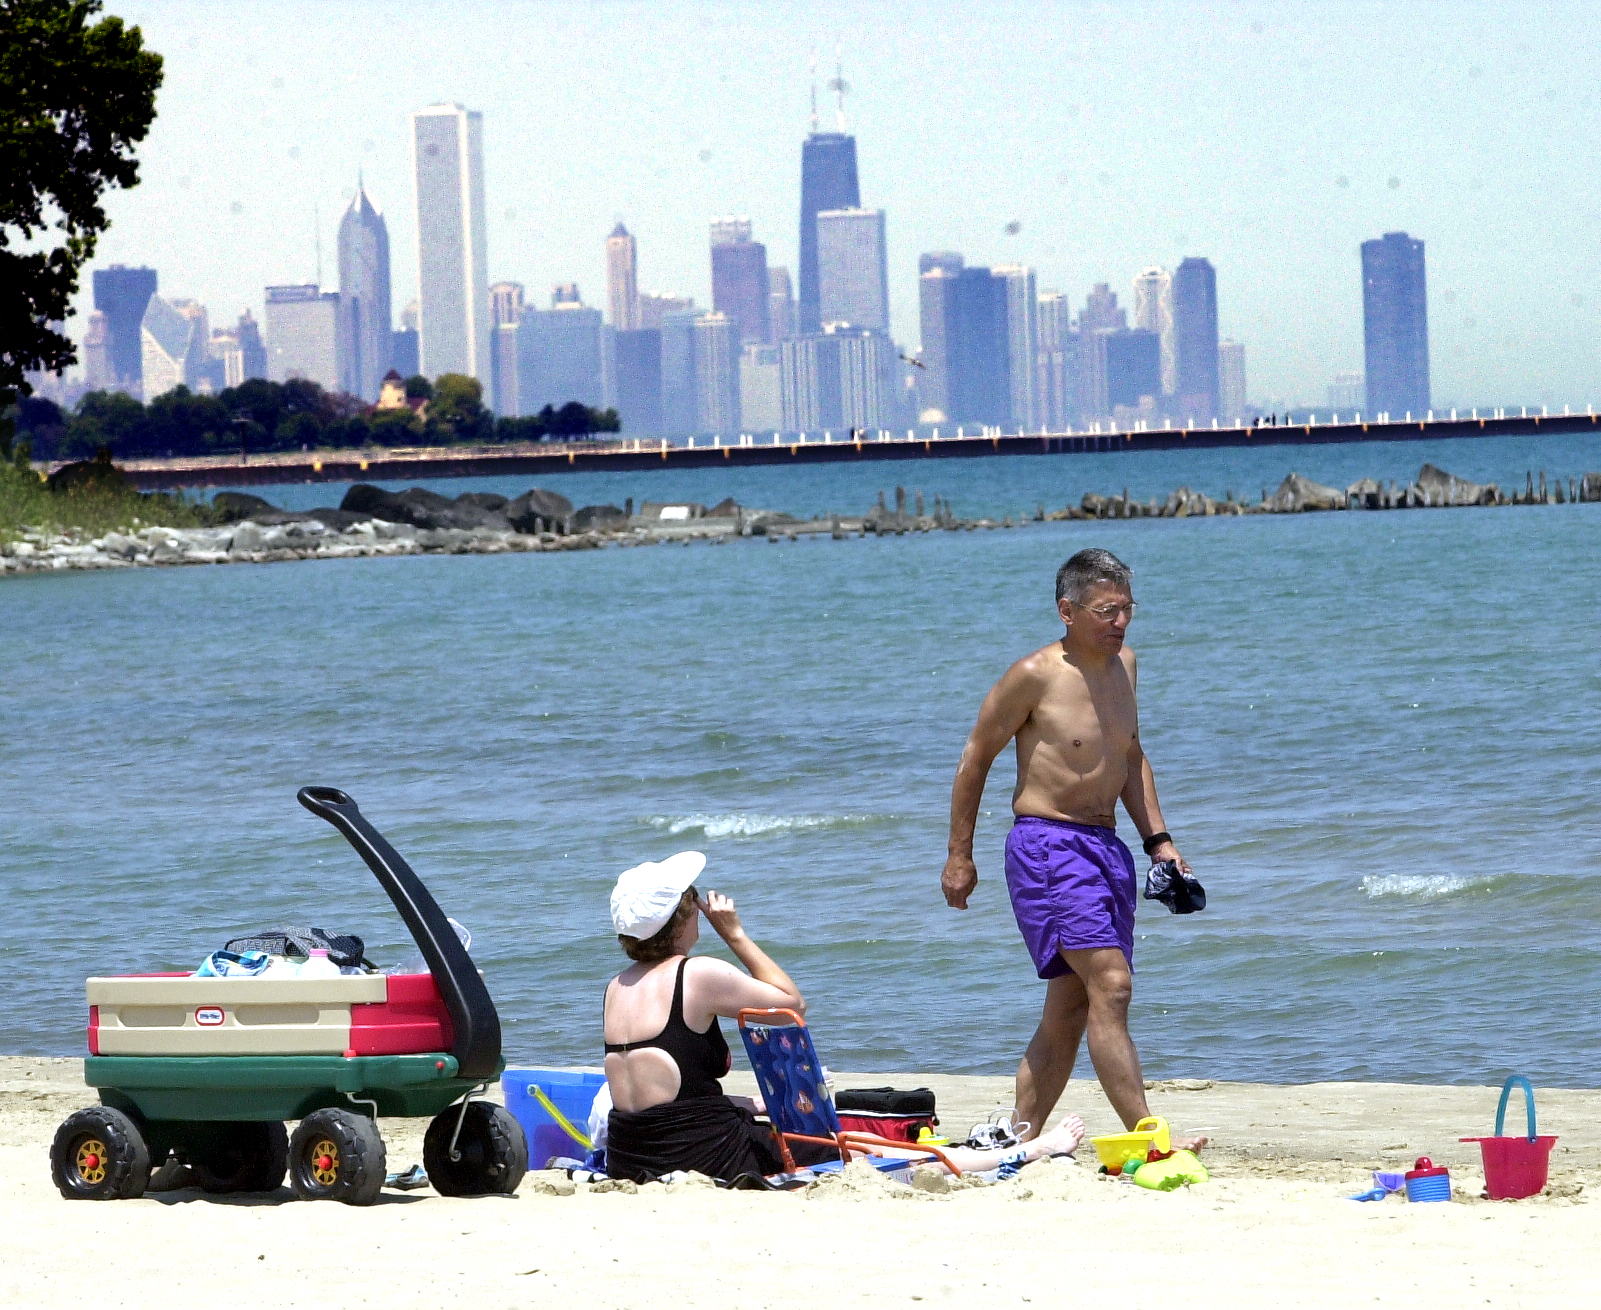 6-17-03 South Shore Cultural Center, 71st & Yates, Chicago Illinois. Ron Rodriguez, his wife Jennifer and son Alex enjoy a great view of the Chicago skyline from the Chicago lakefront beach near the South Shore Cultural Center. Ron and his family were enjoying the last day of his vacation after returning from Myrtle Beach. (KEITH HALE/Sun-Times)